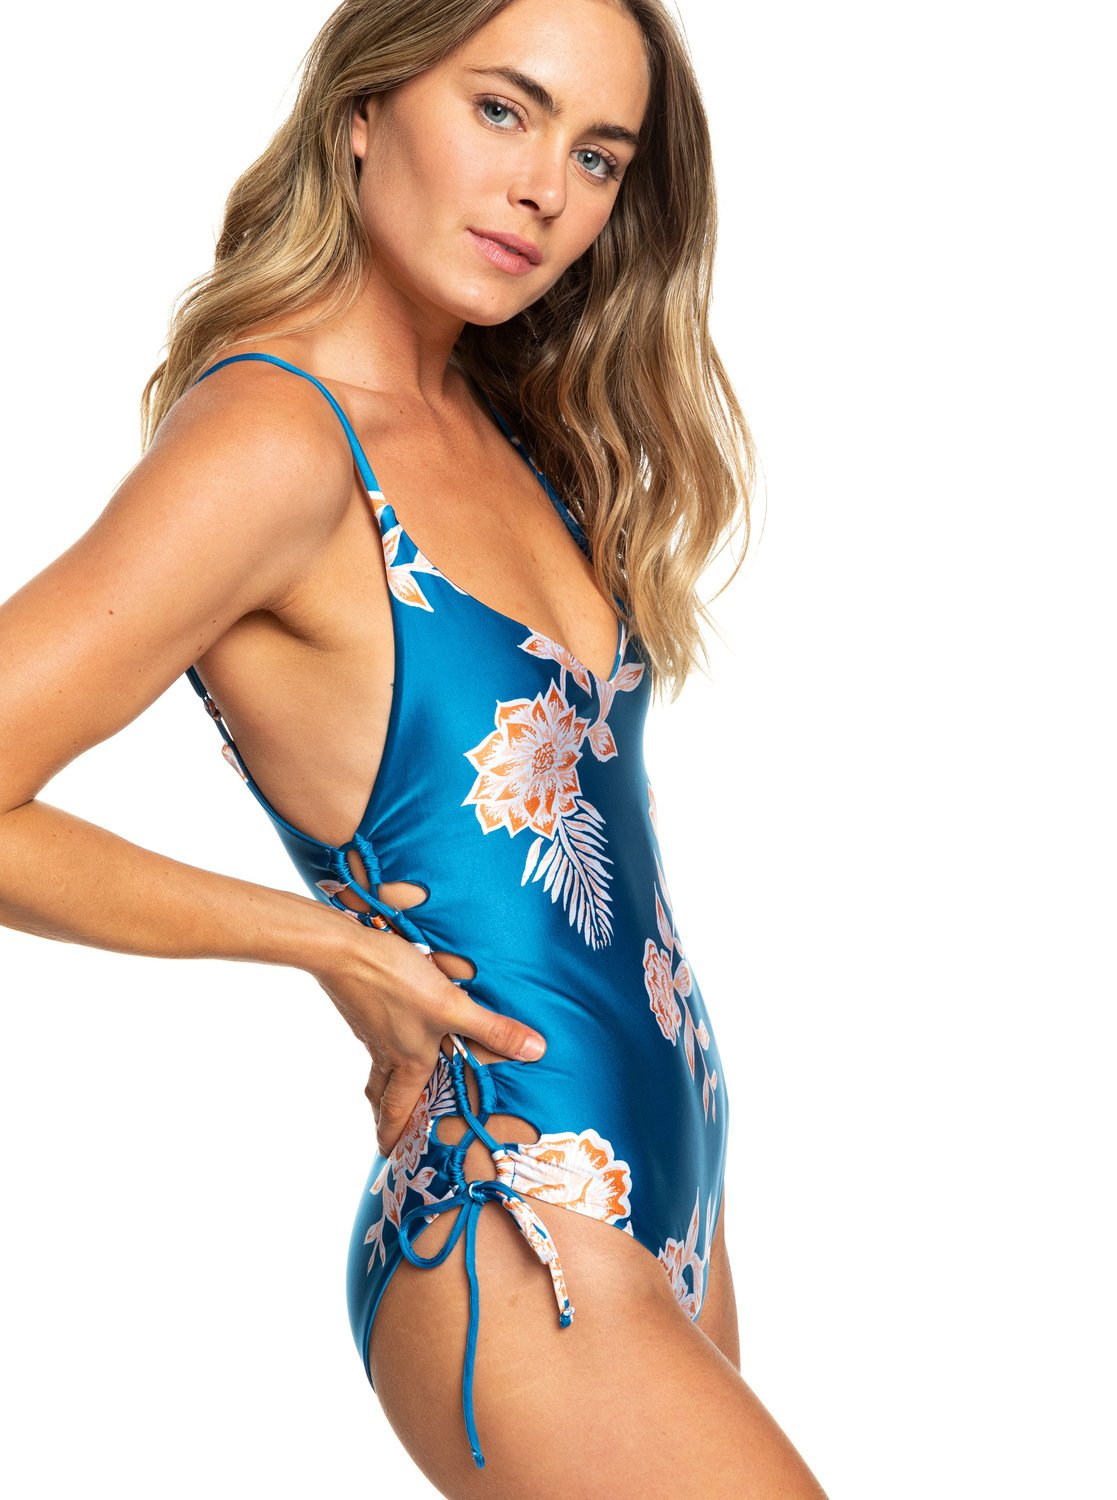 dc81ac029d 0 Riding Moon One-Piece Swimsuit Blue ERJX103182 Roxy